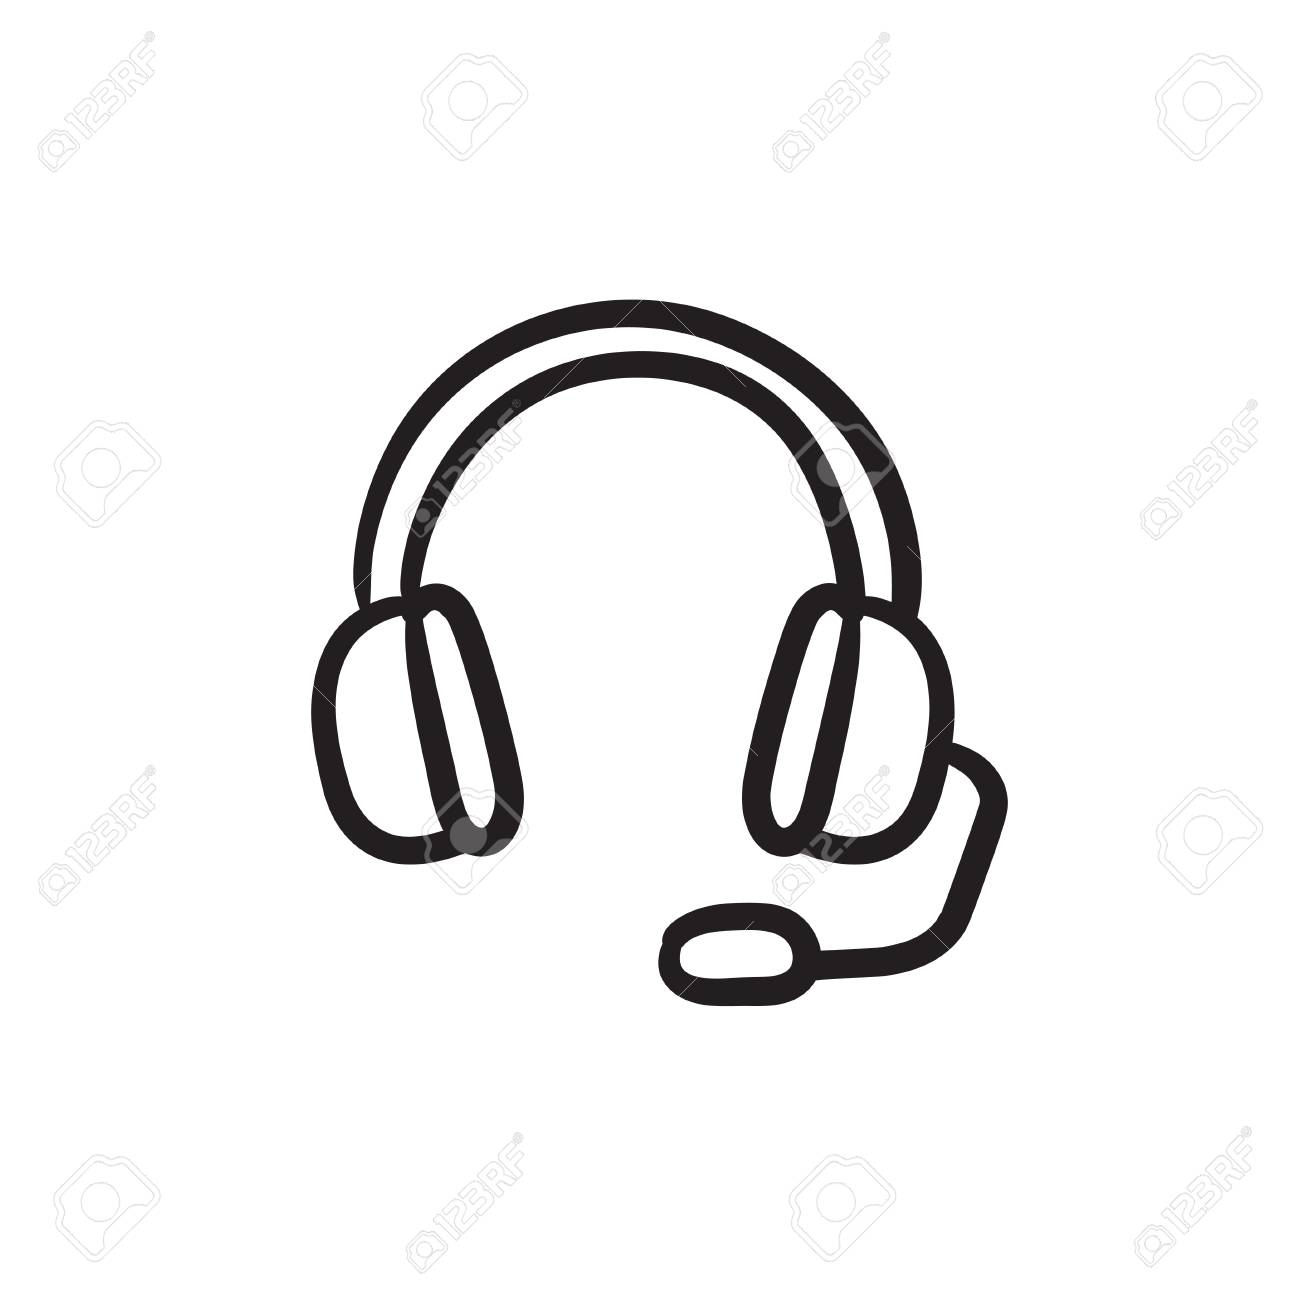 1300x1300 Headphone With Microphone Vector Sketch Icon Isolated